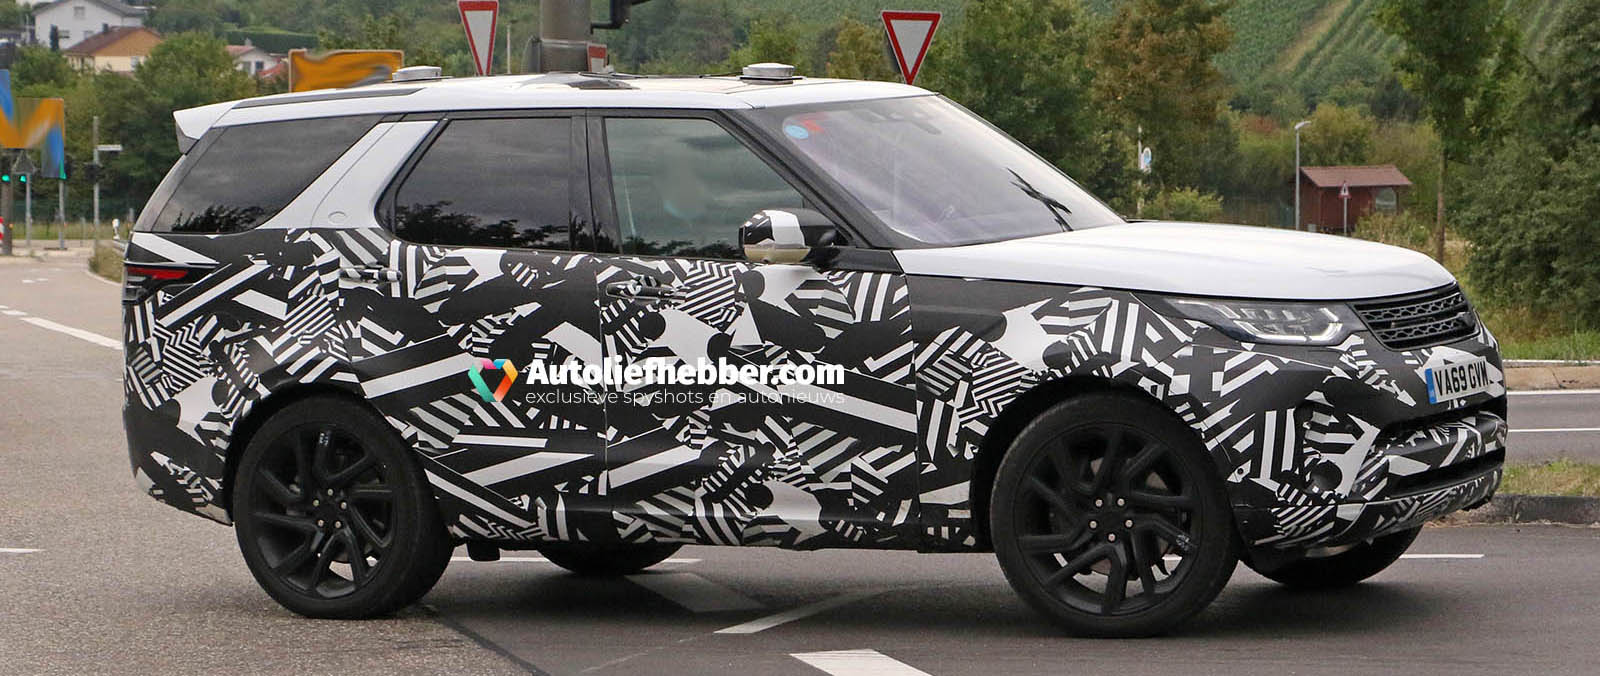 Spyshots Landrover Discovery Facelift